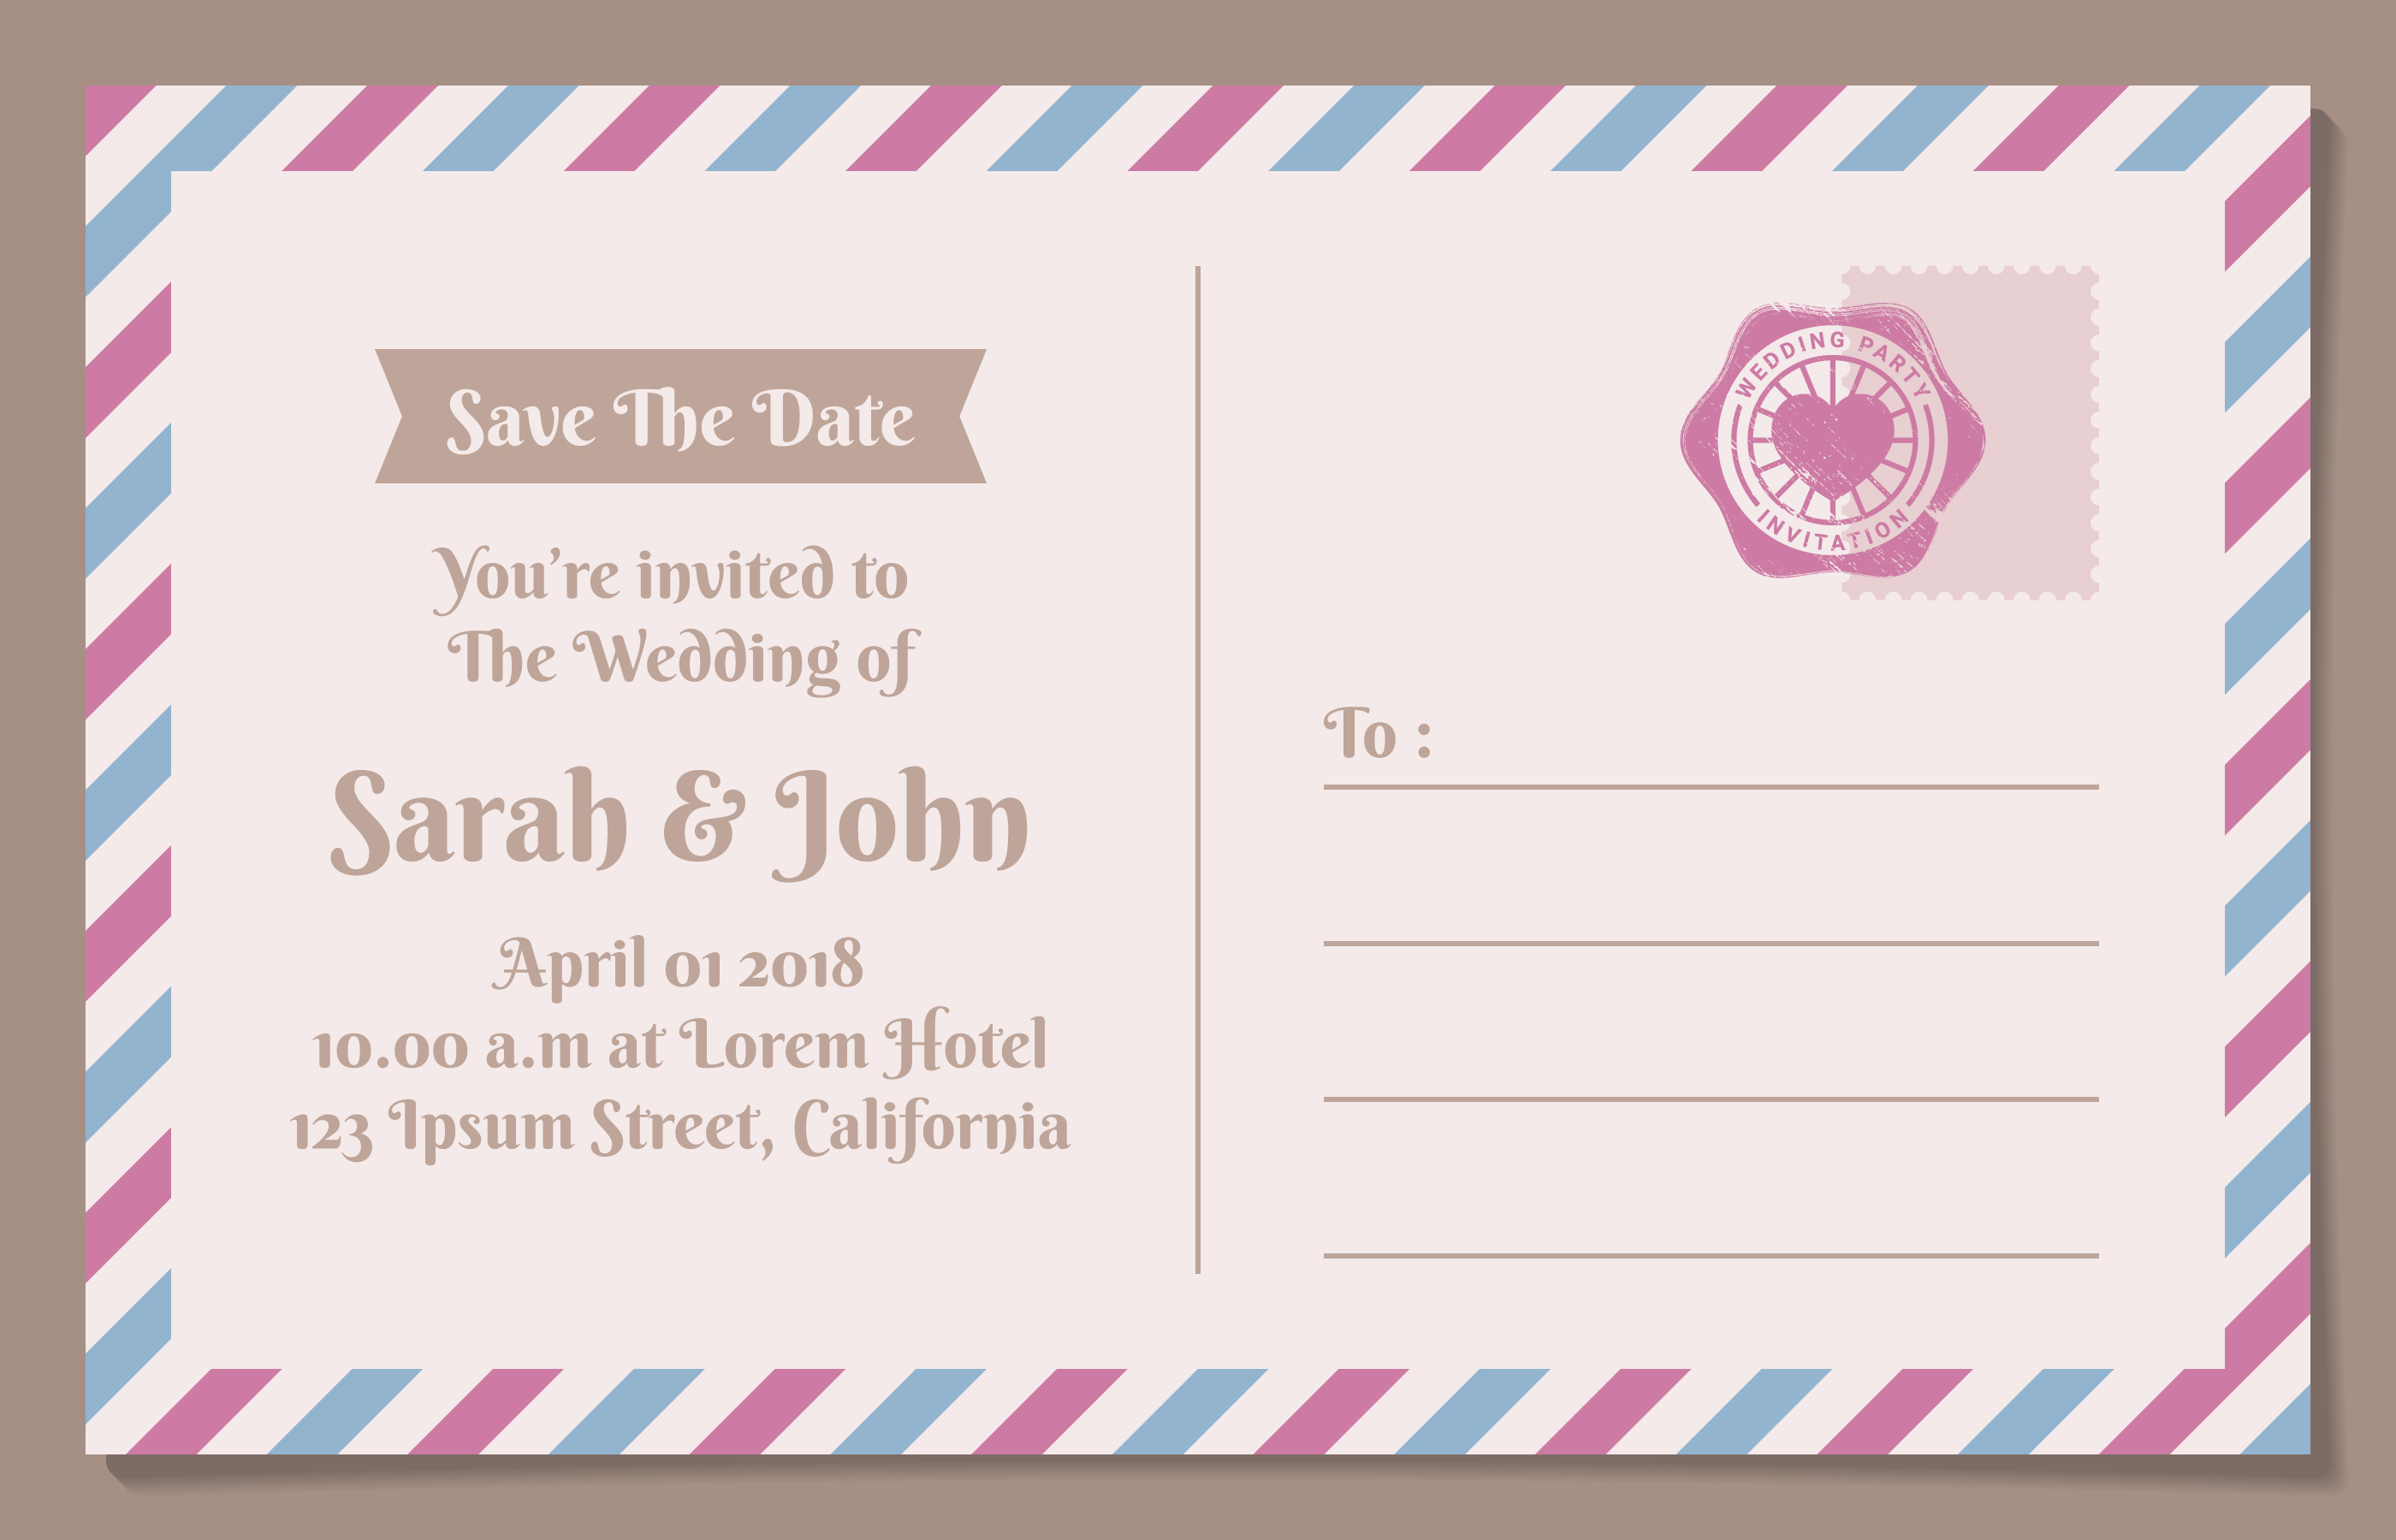 Vintage Postcard Save The Date Background For Wedding Invitation ...